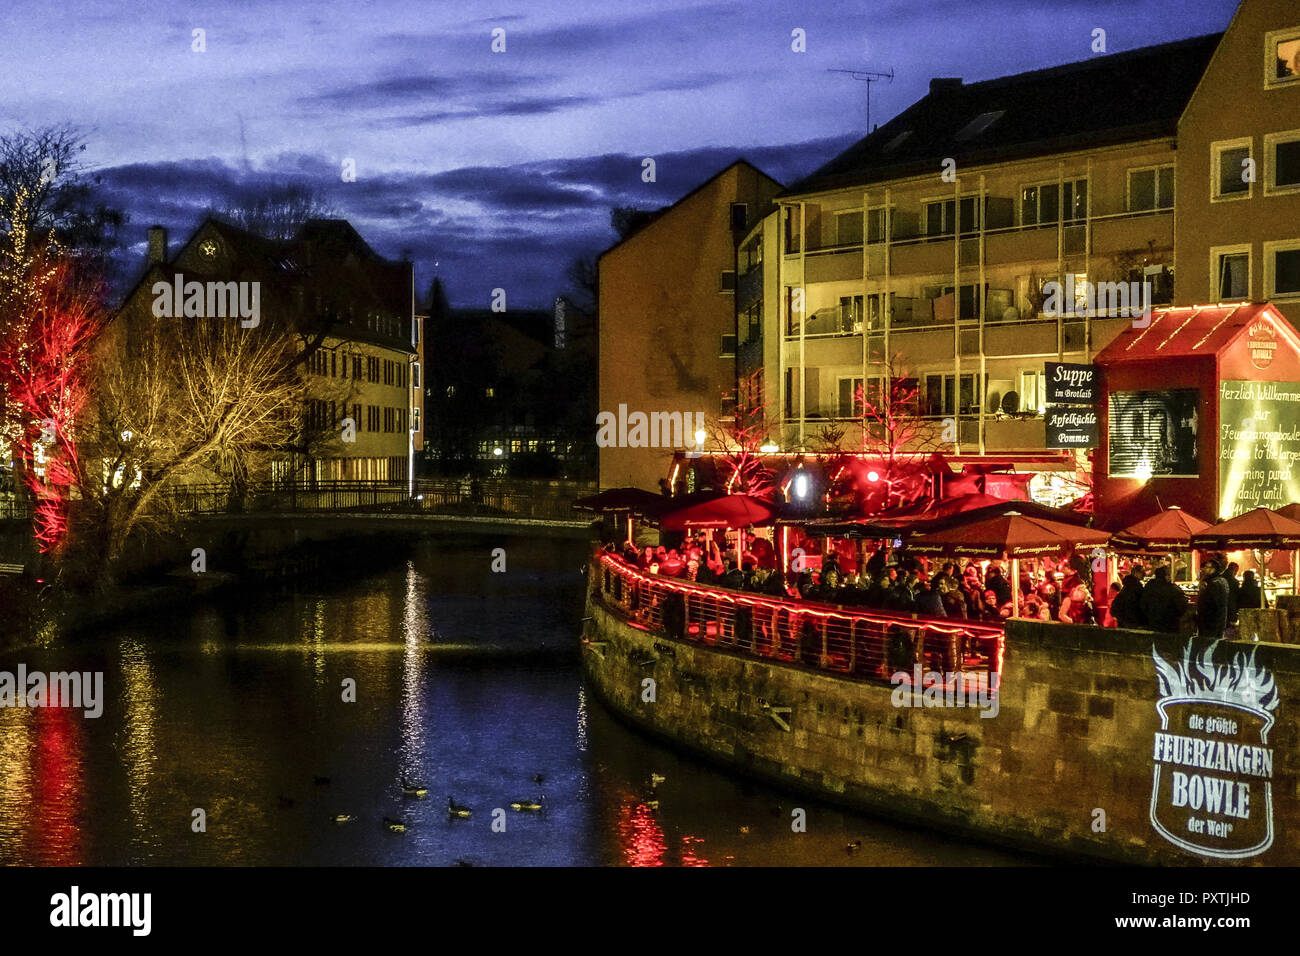 Fleischbrucke Stock Photos & Fleischbrucke Stock Images